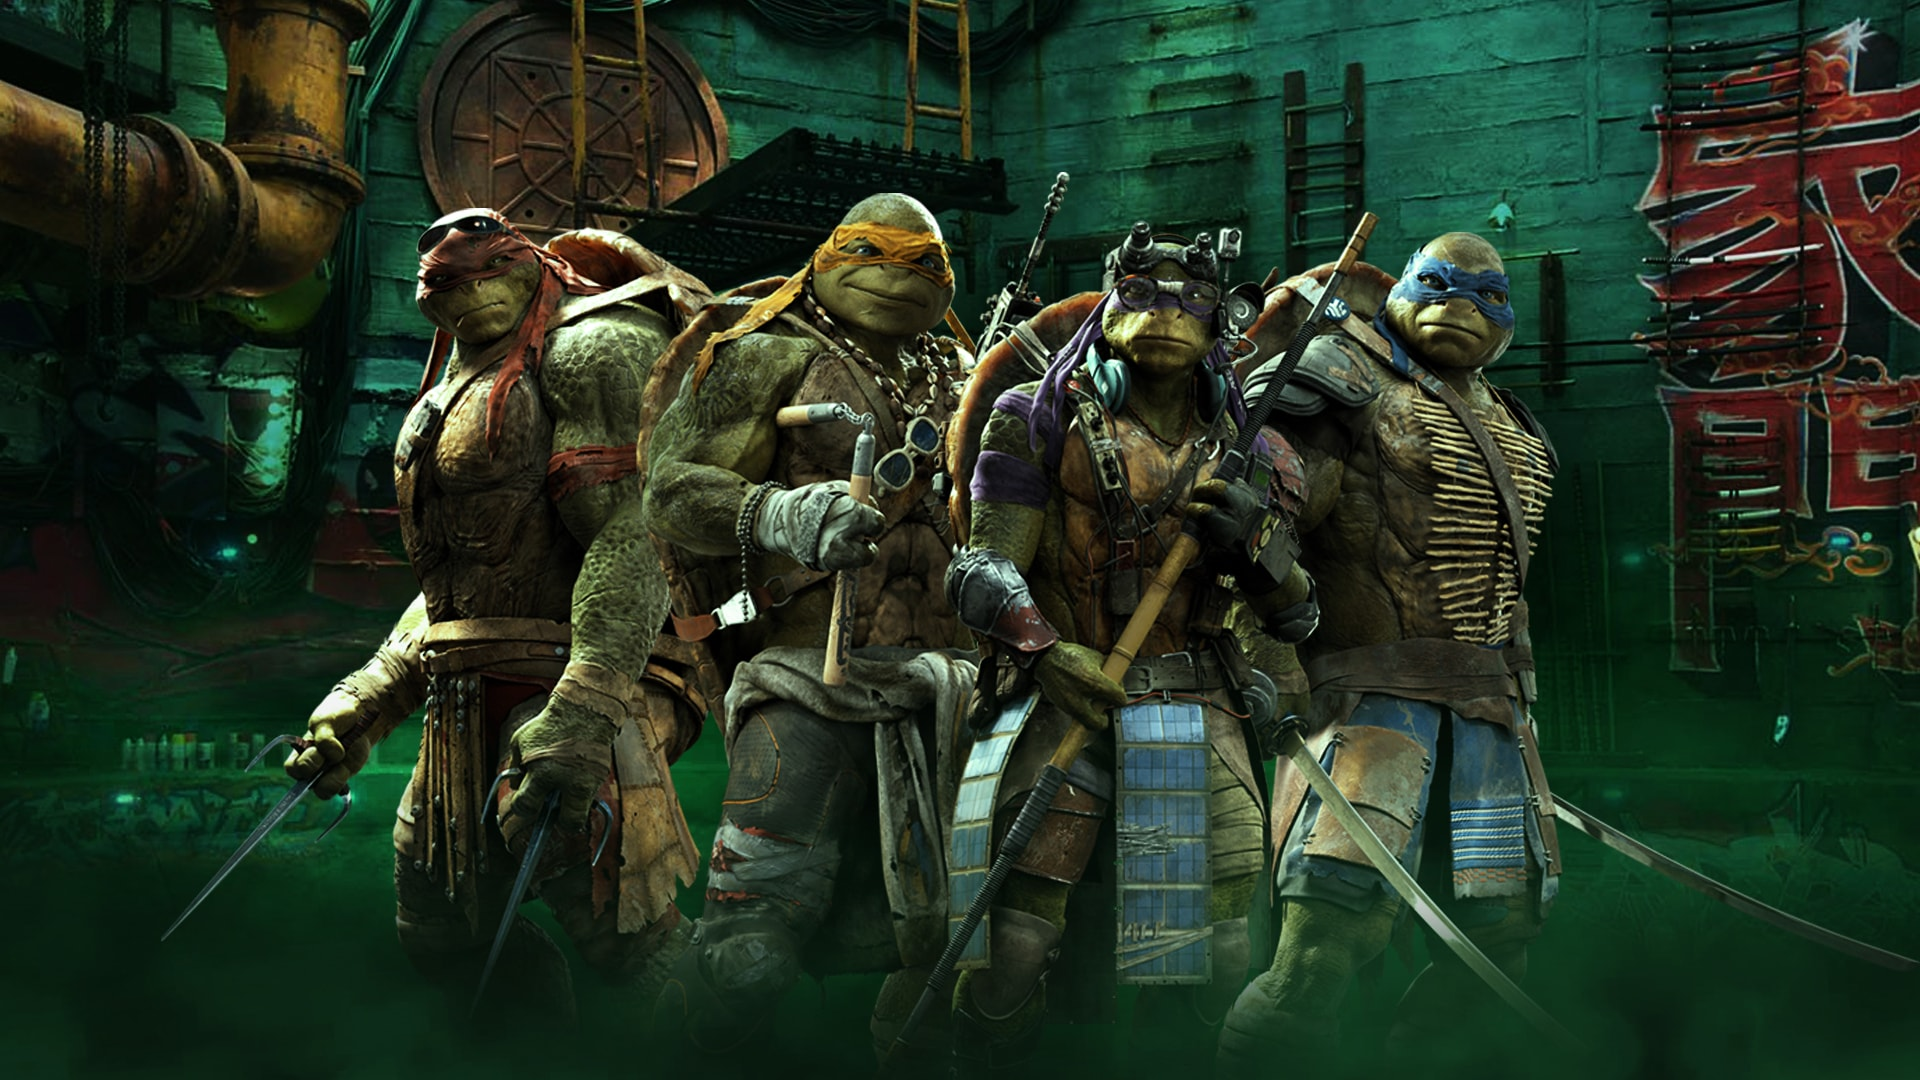 Teenage mutant ninja turtles hd desktop wallpapers 7wallpapers teenage mutant ninja turtles background voltagebd Gallery